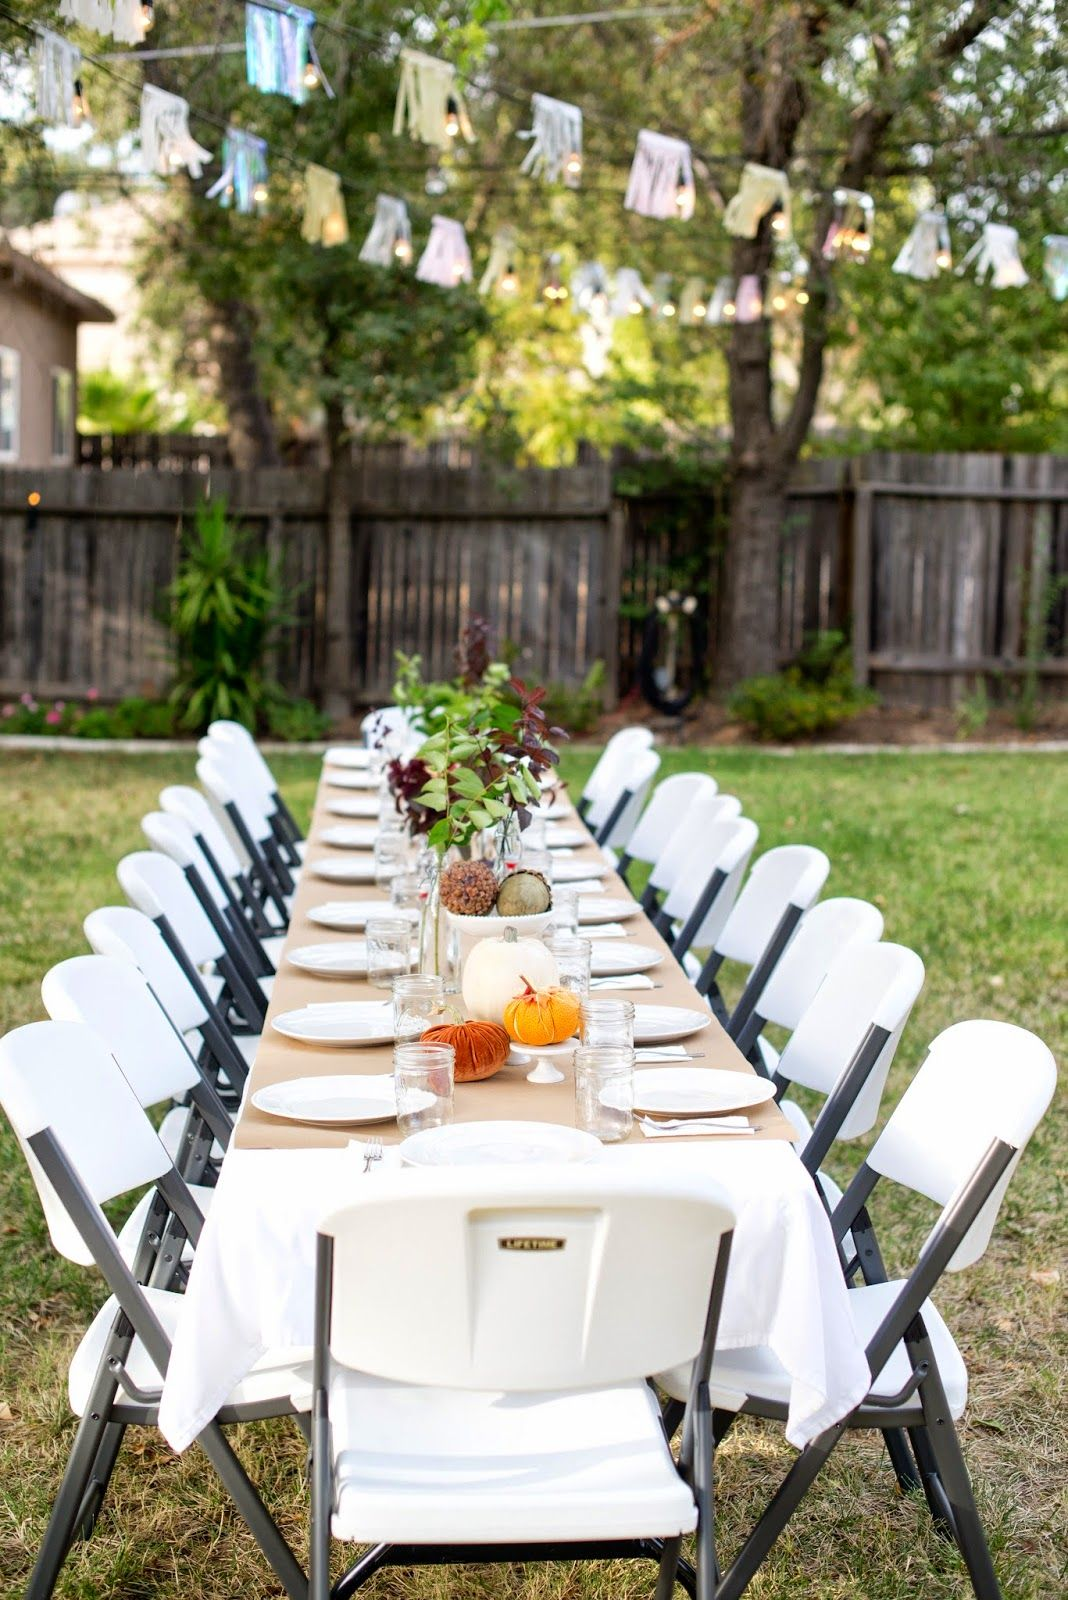 Medium Of Backyard Party Ideas Pinterest